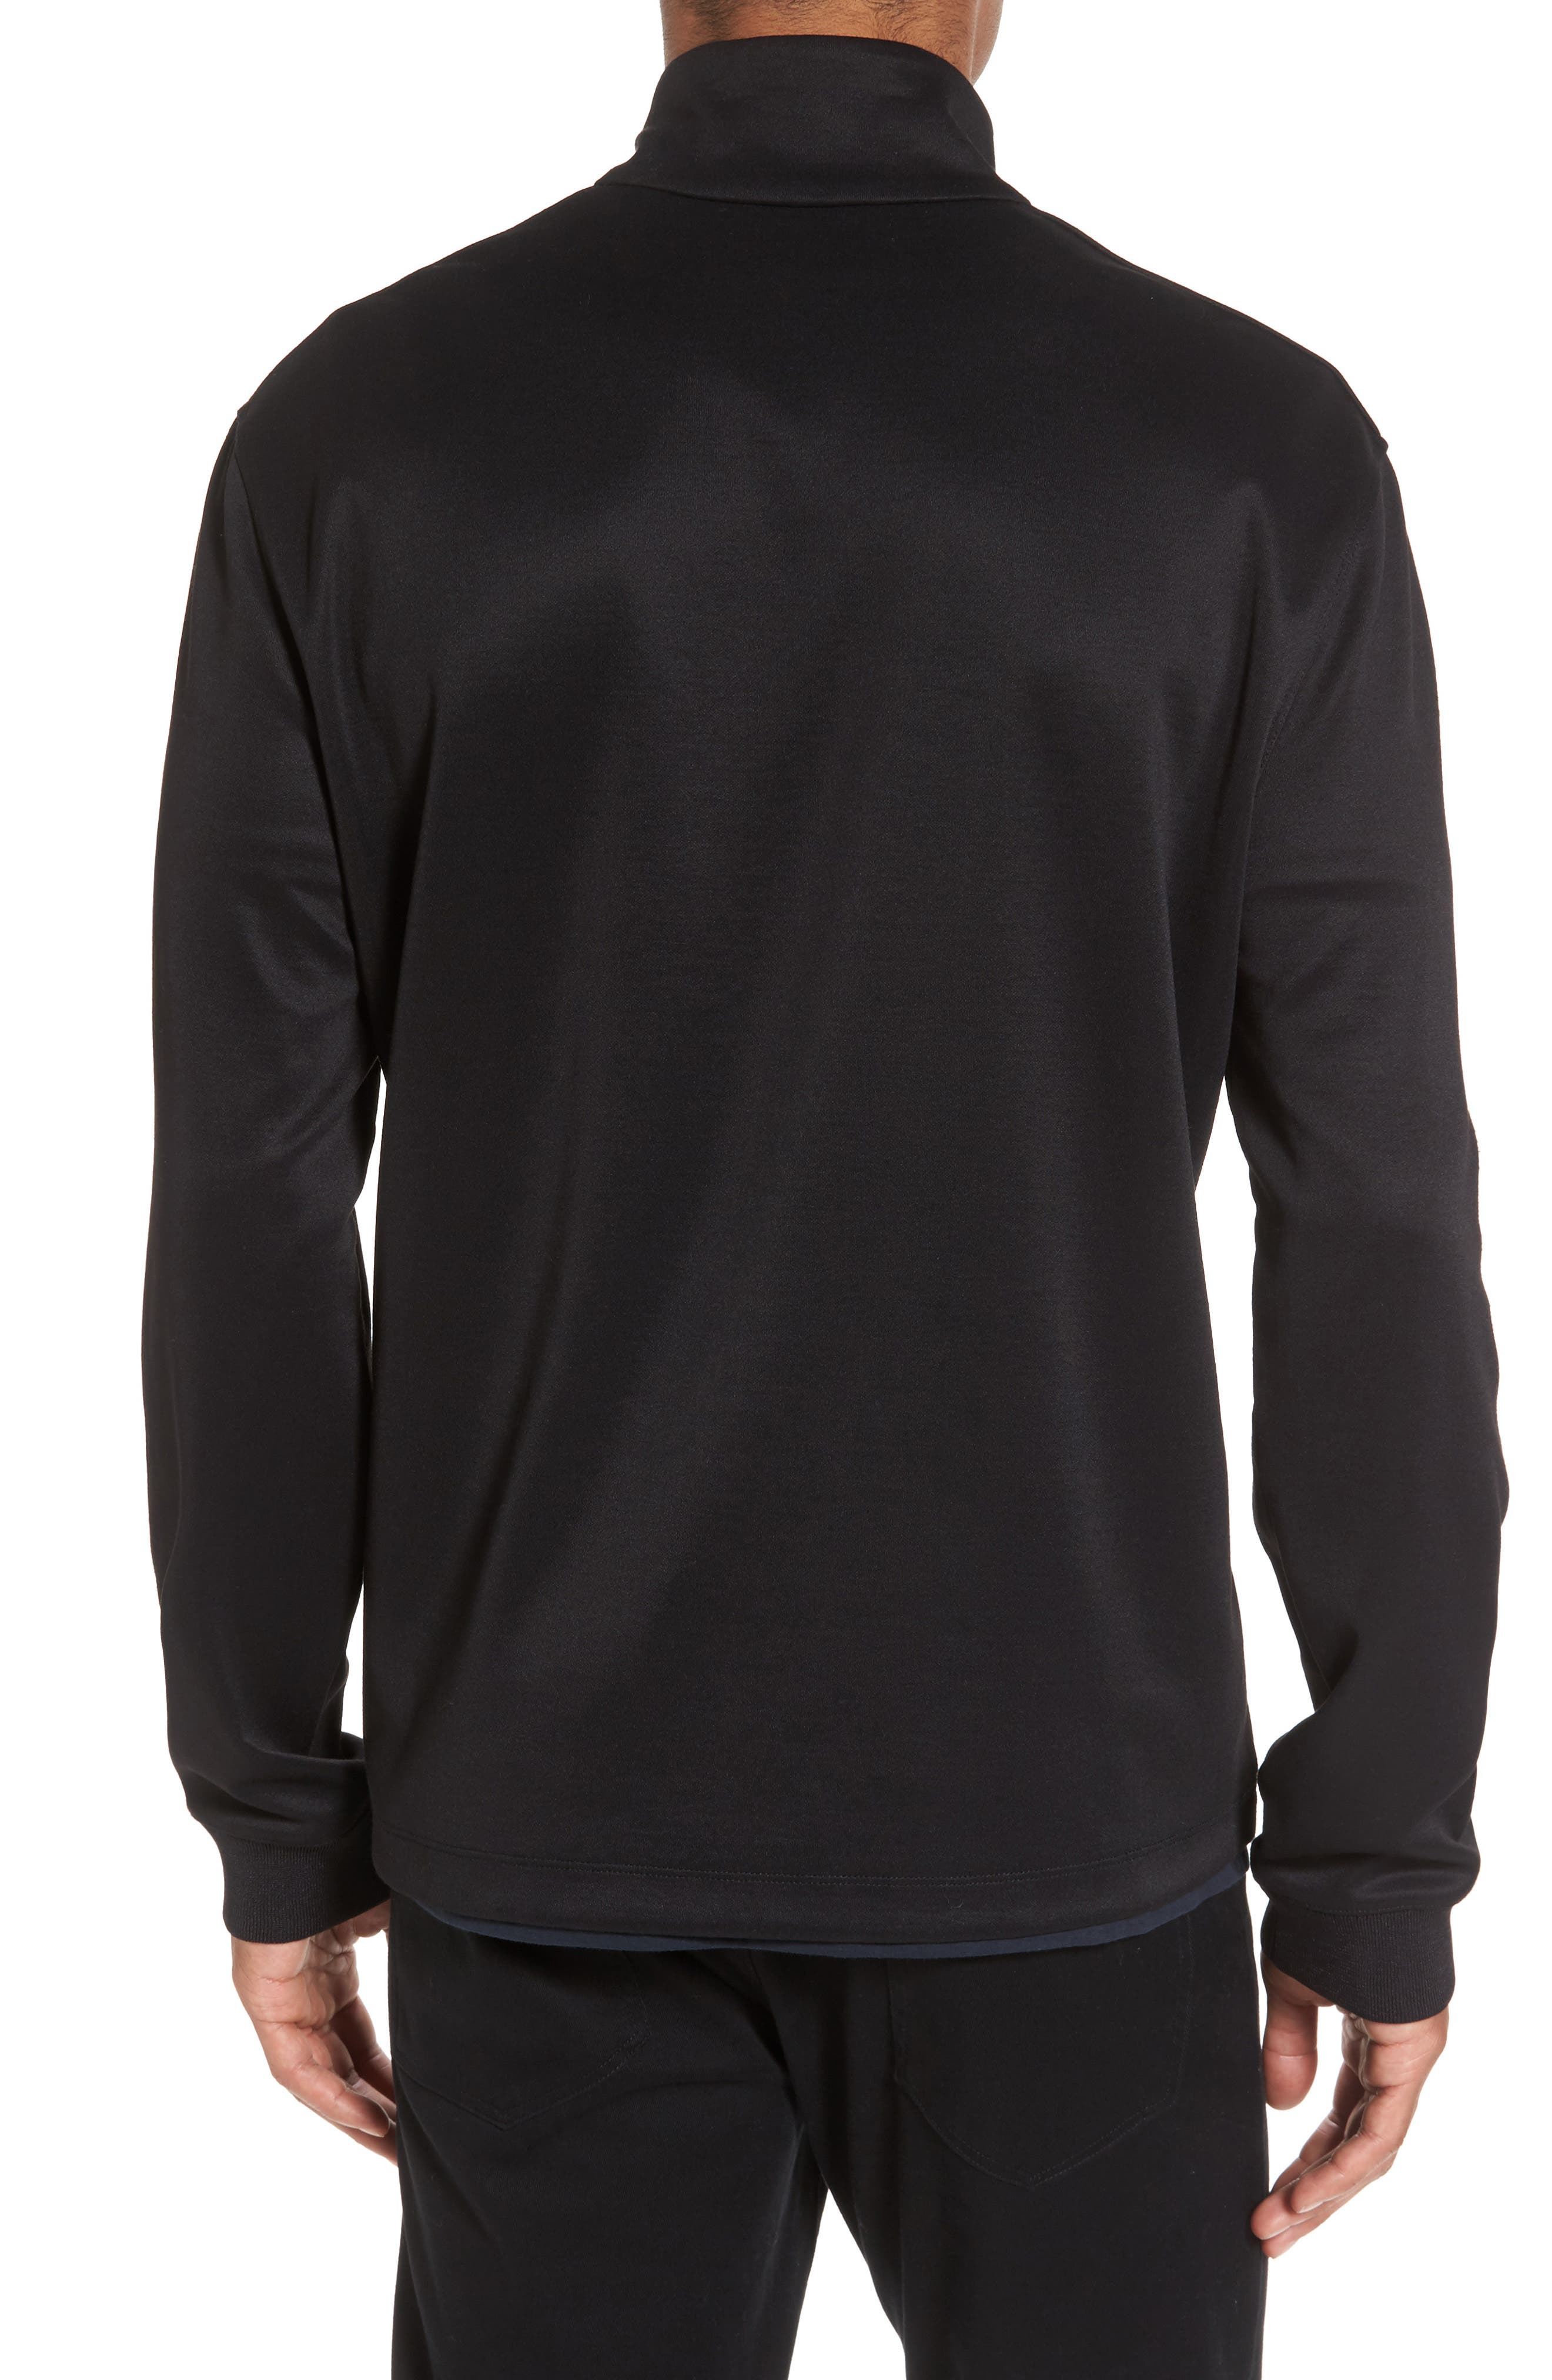 Quarter Zip Jacket,                             Alternate thumbnail 2, color,                             001